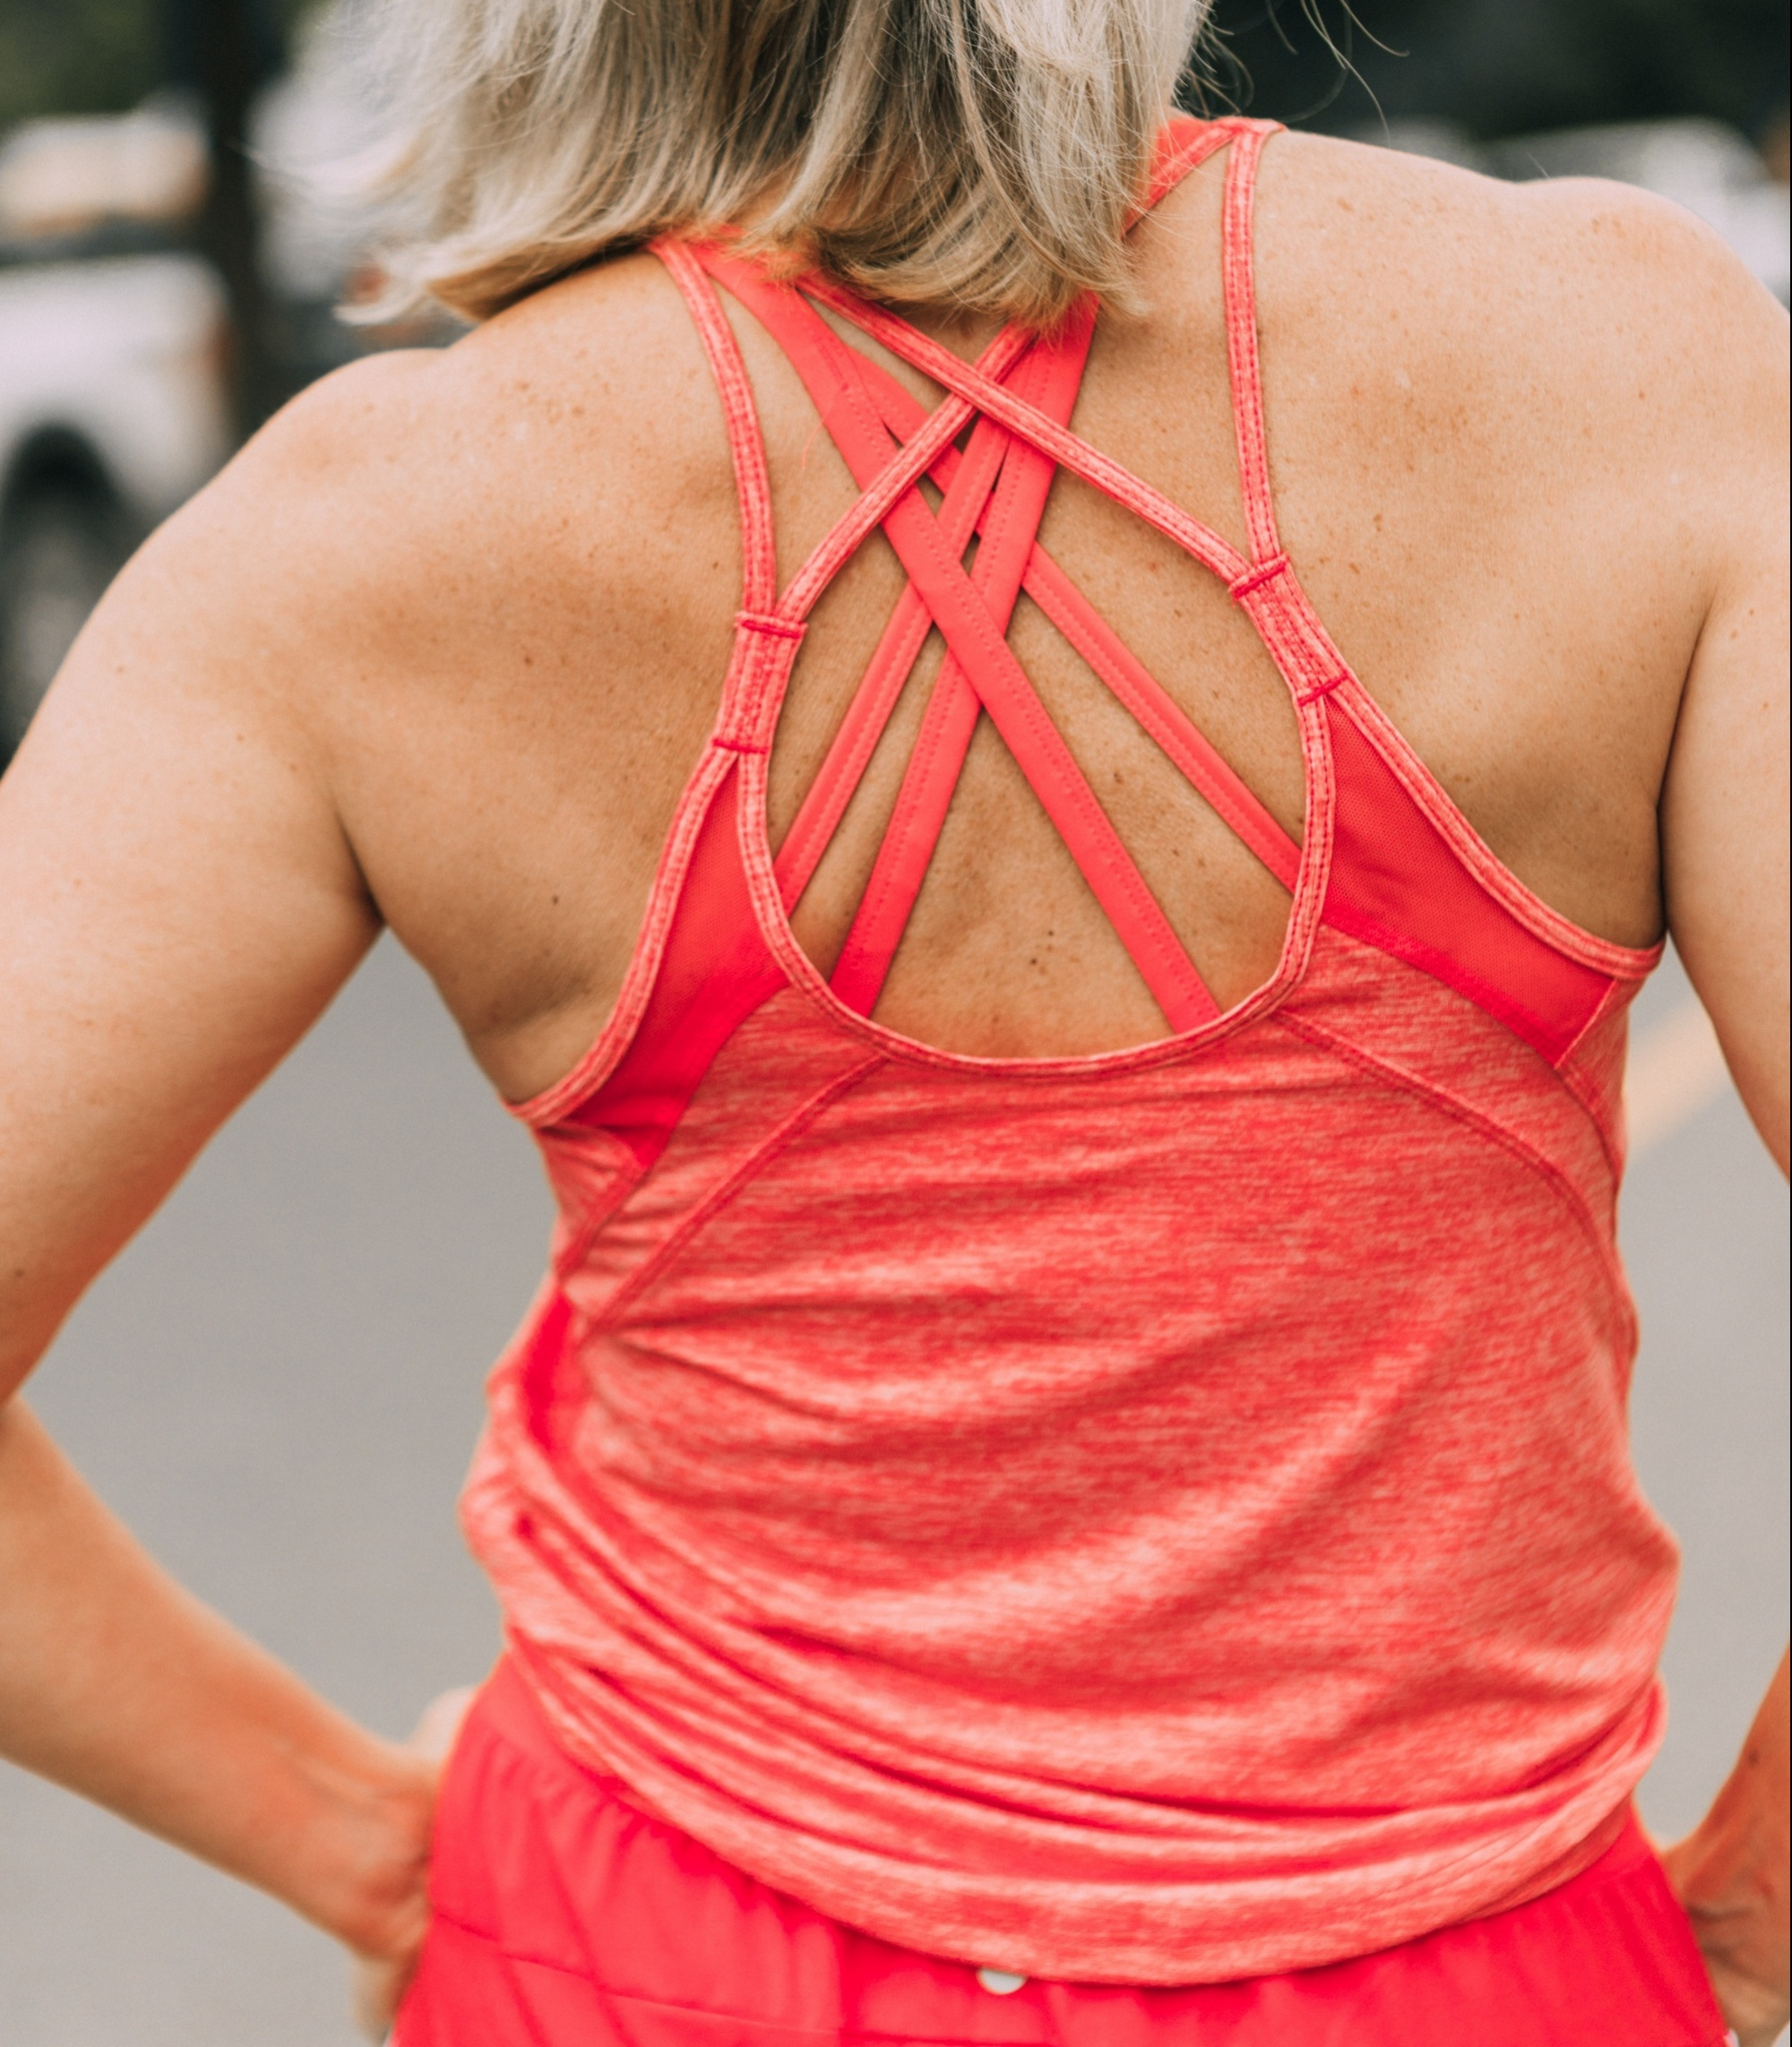 Affordable Activewear From Walmart, Fashion blogger Erin Busbee of BusbeeStyle.com wearing pink racing stripe joggers, pink tank, and pink sports bra by Athletic Works from Walmart in Telluride, CO